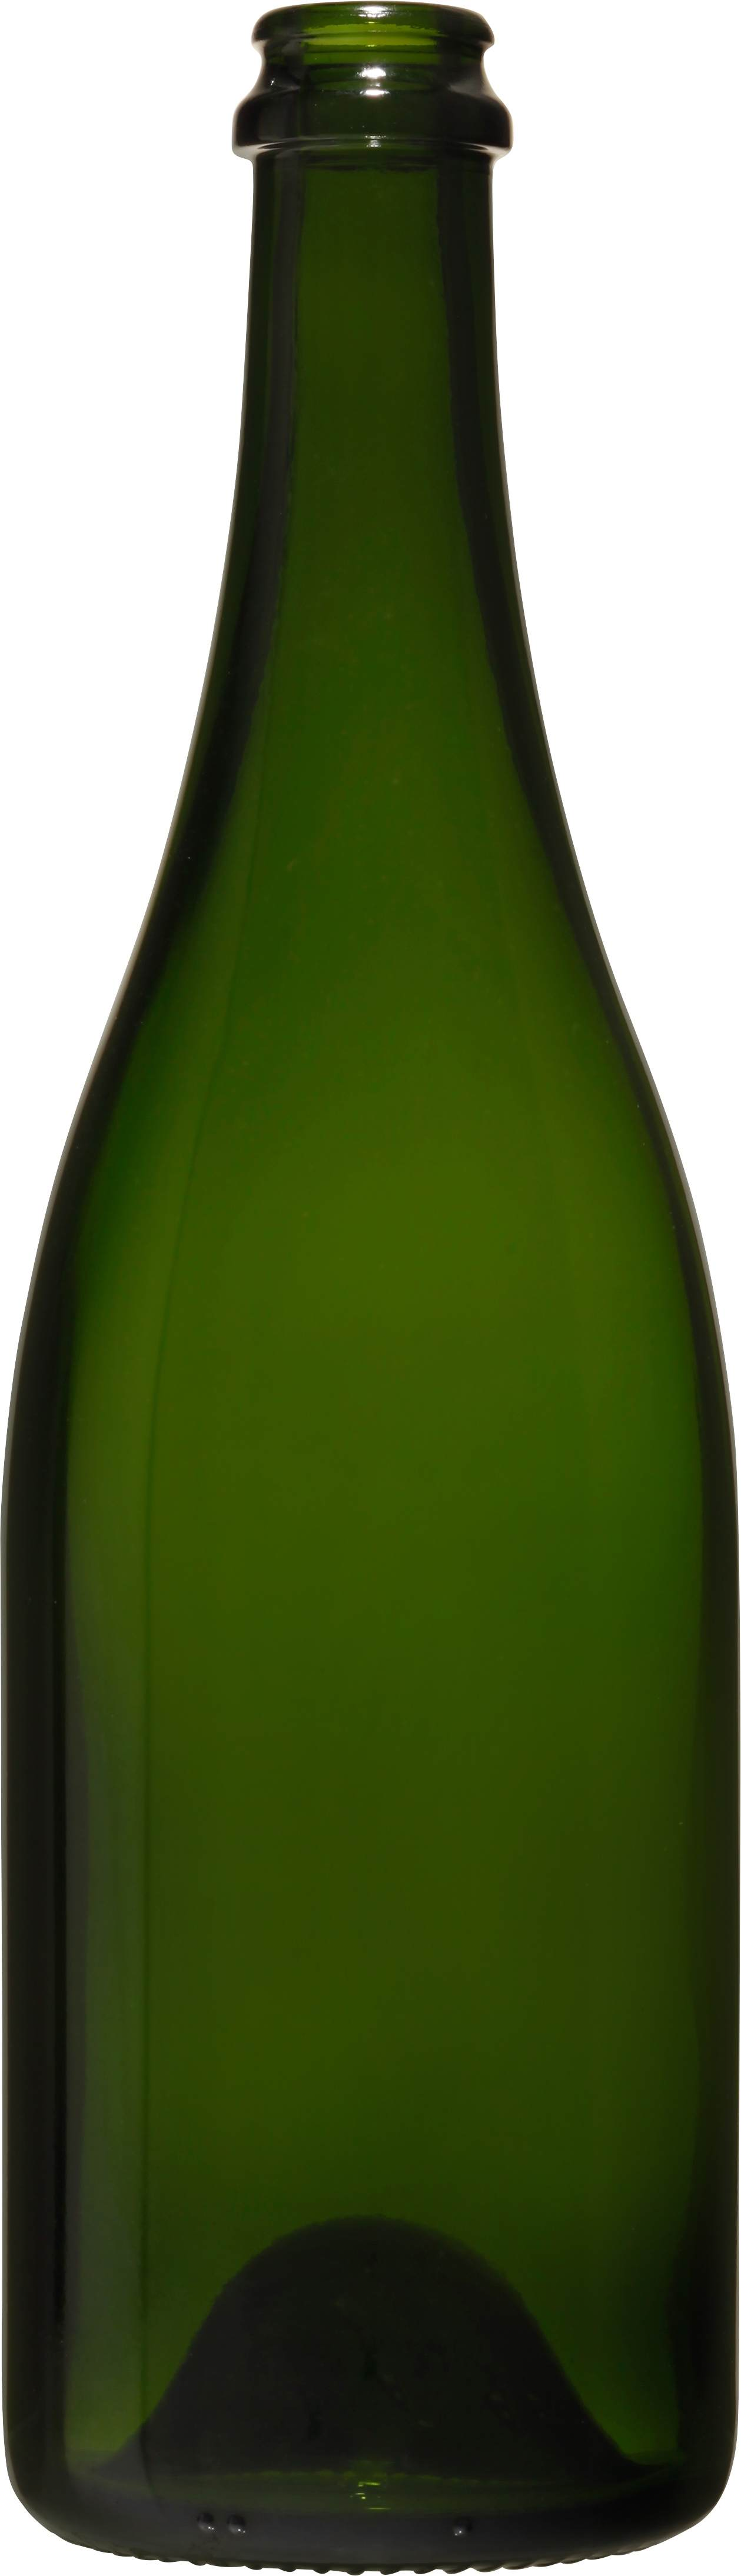 02. CHAMPENOISE STANDARD 75CL